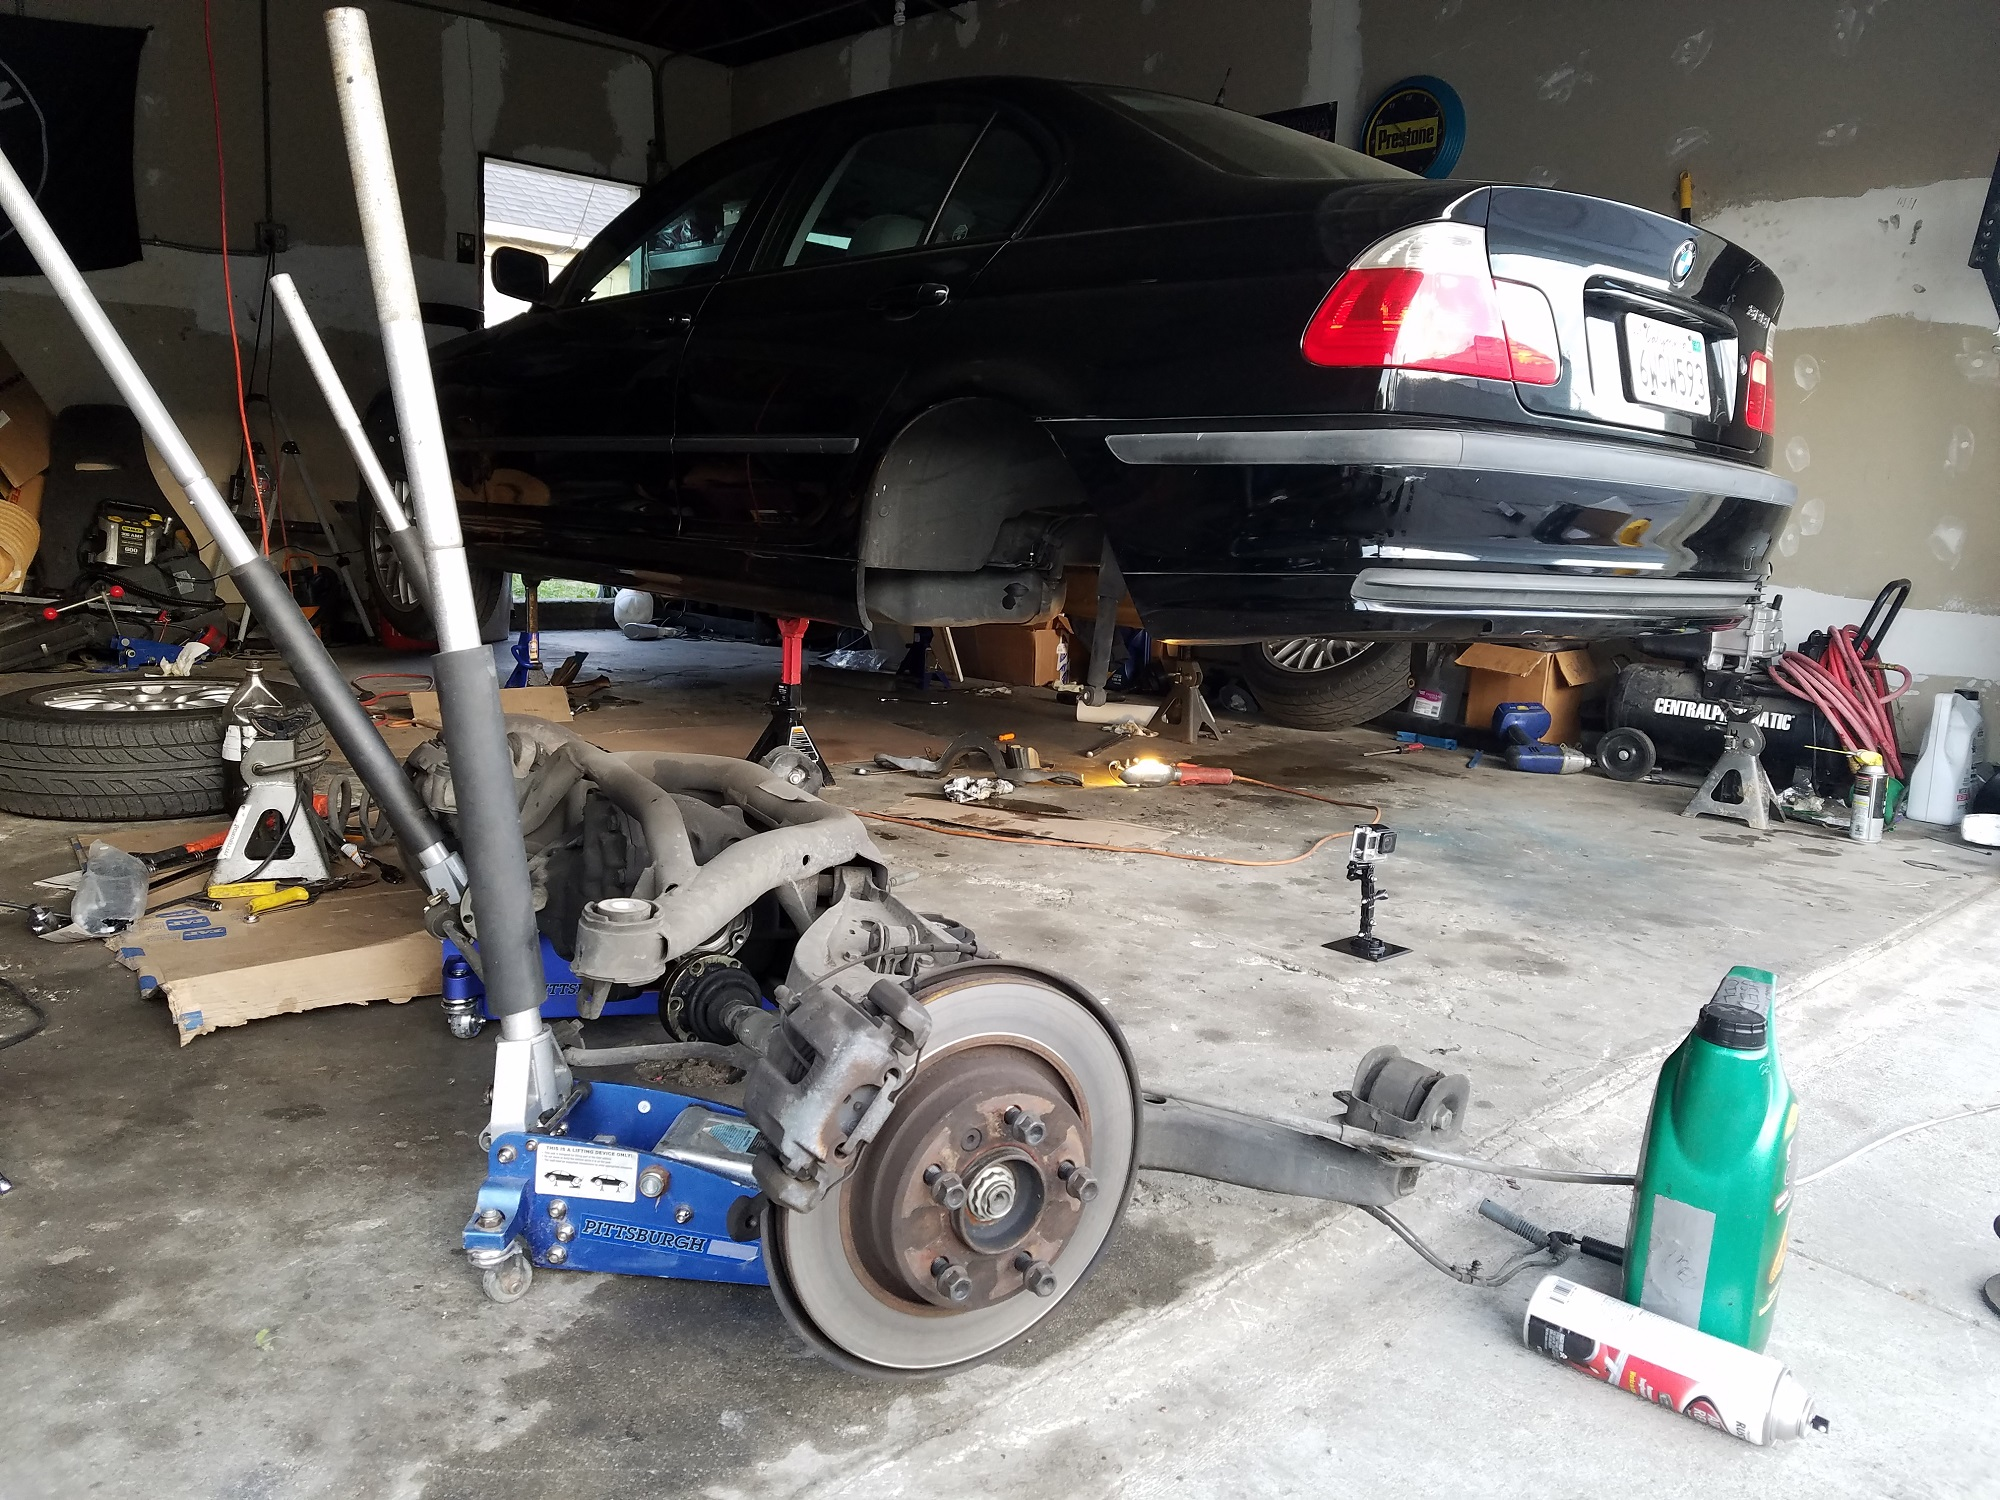 Removing the Rear Subframe From Project BMW E46 - 6SpeedOnline